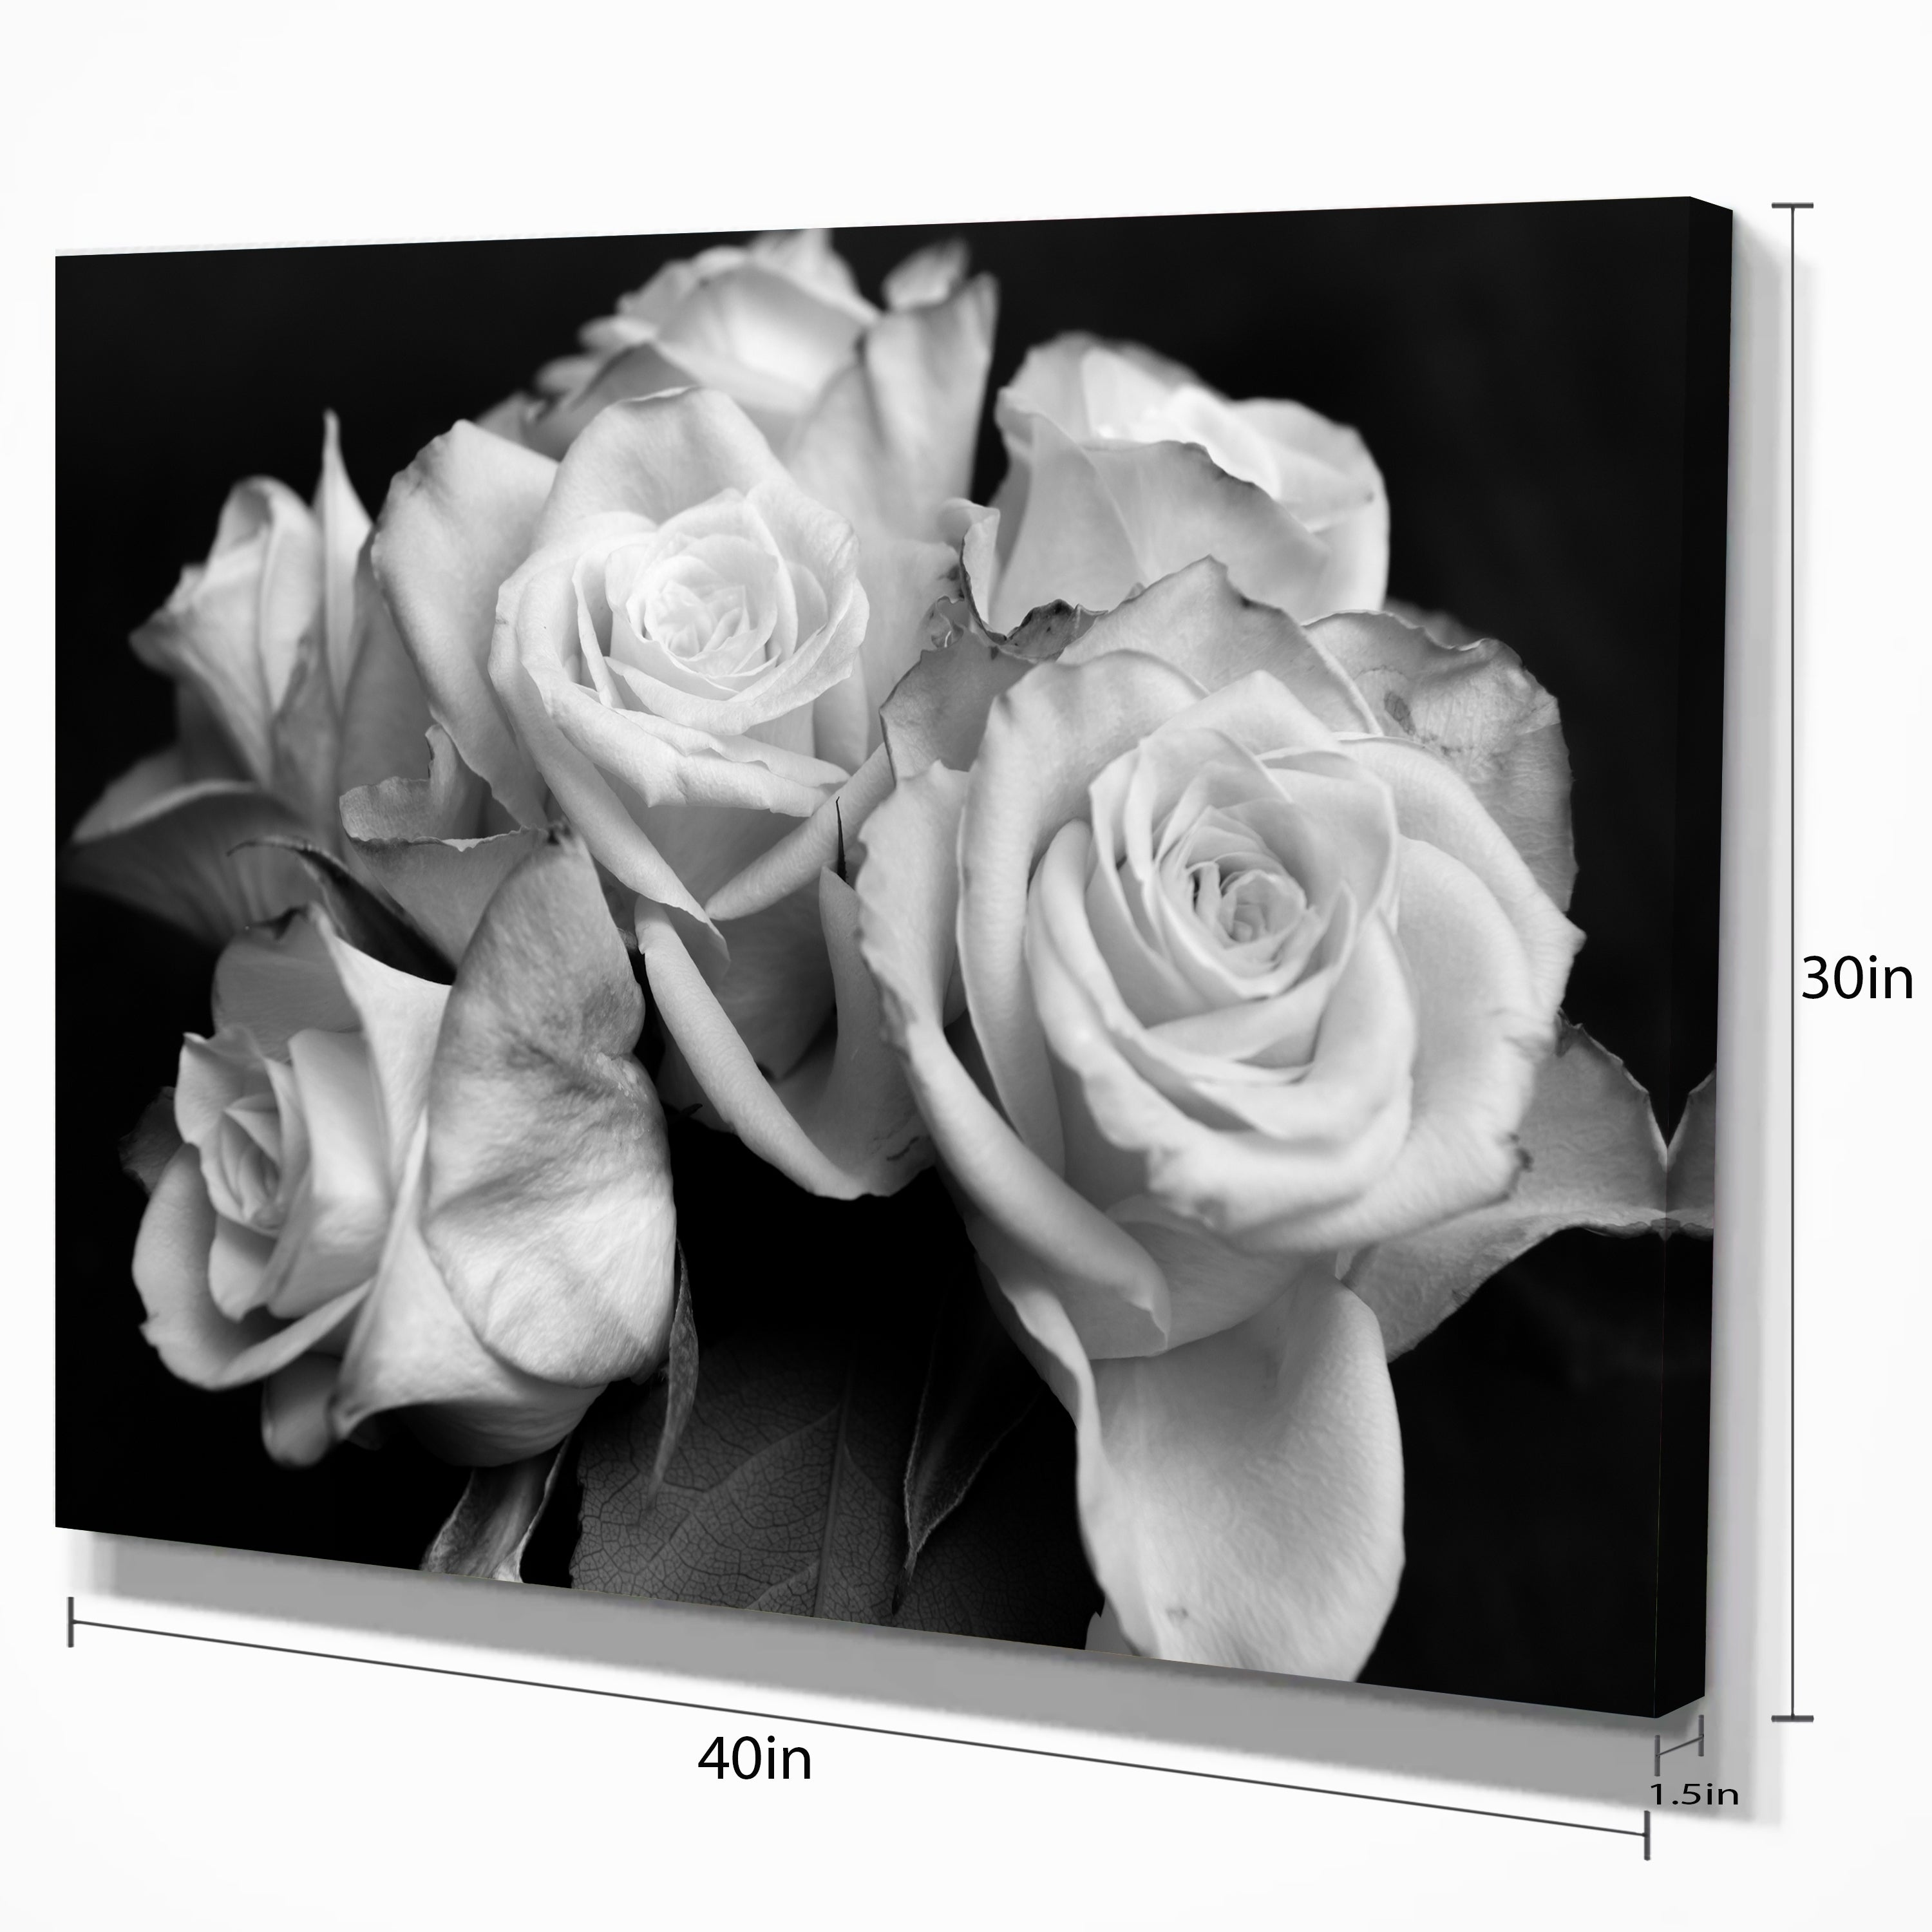 Shop bunch of roses black and white floral canvas art print on shop bunch of roses black and white floral canvas art print on sale free shipping on orders over 45 overstock 12210524 mightylinksfo